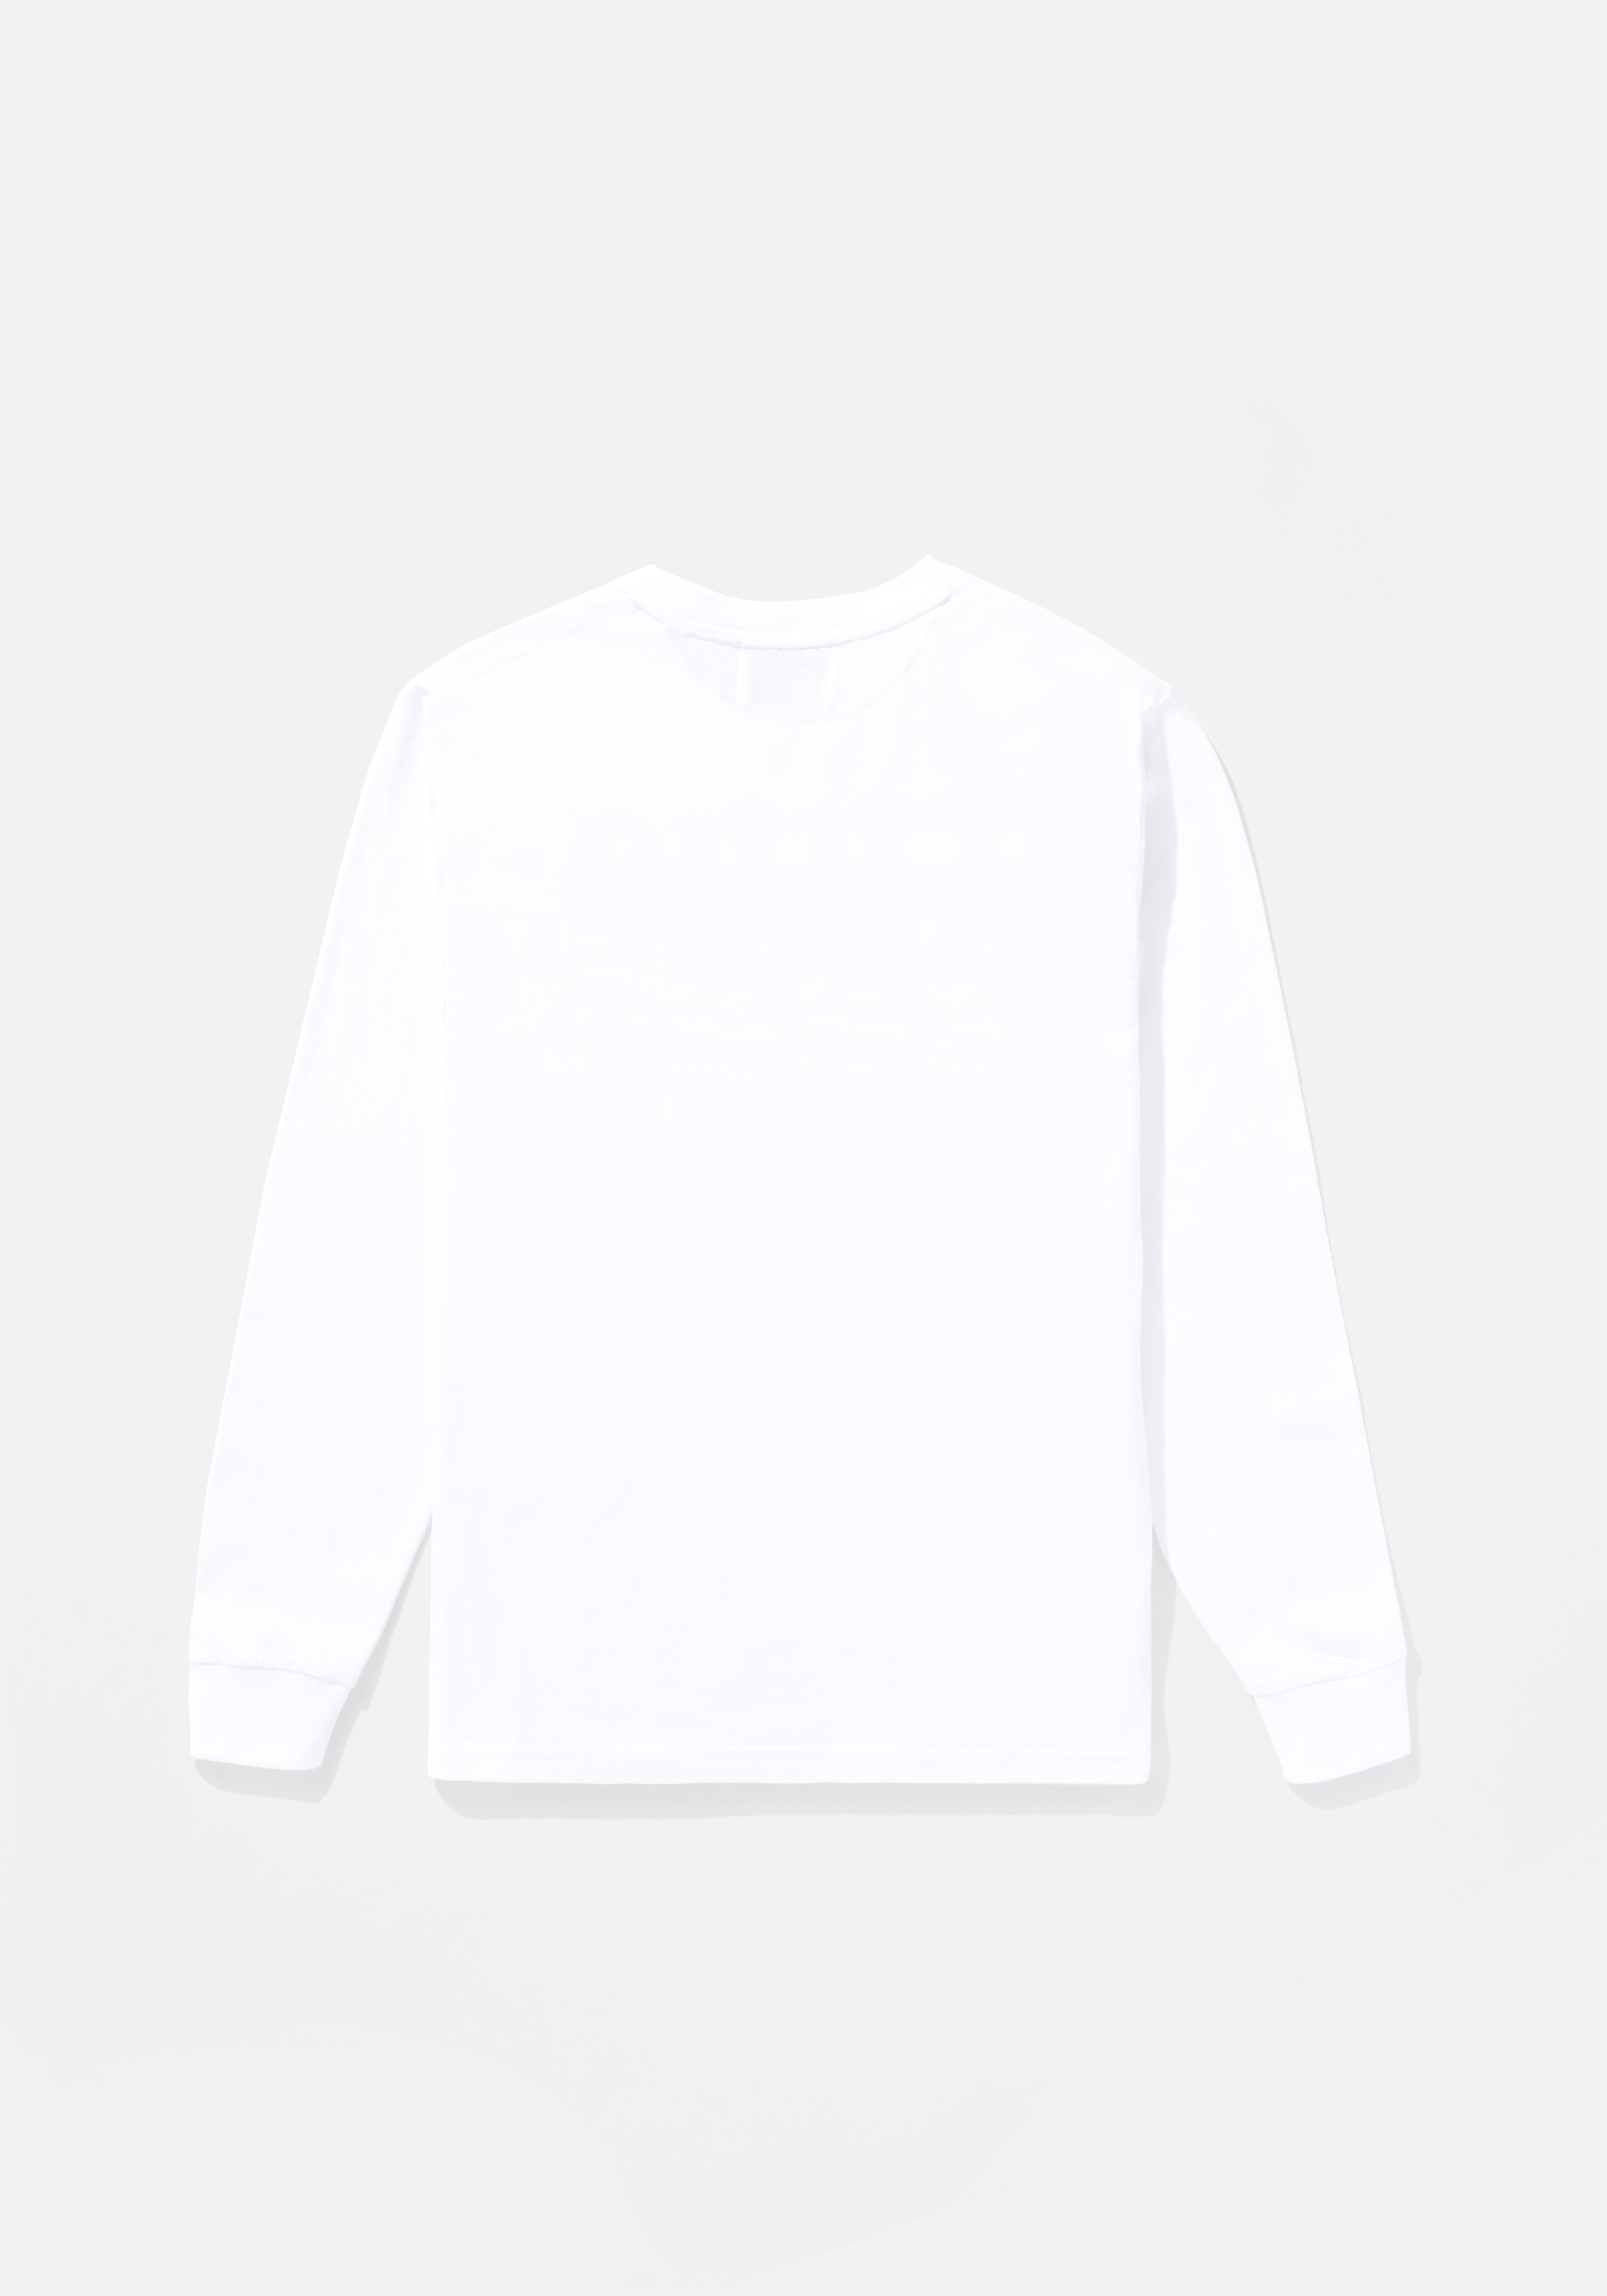 mki symbol arm long sleeve 2